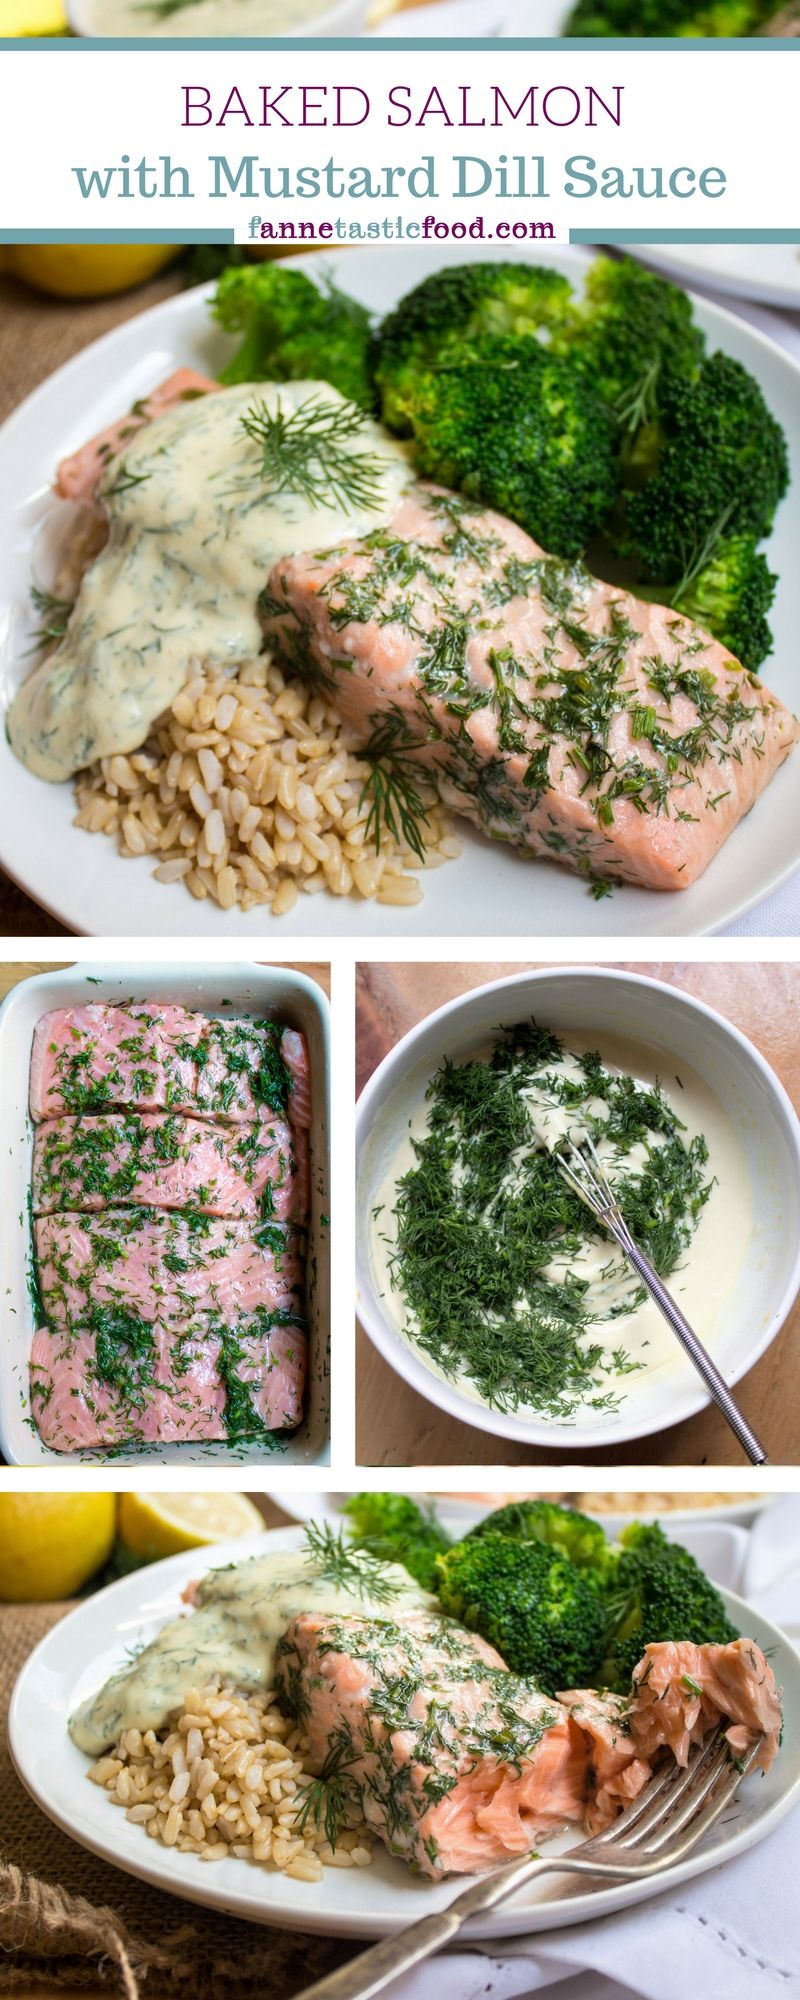 Photo of Baked Salmon with Lemon Mustard Dill Sauce Recipe